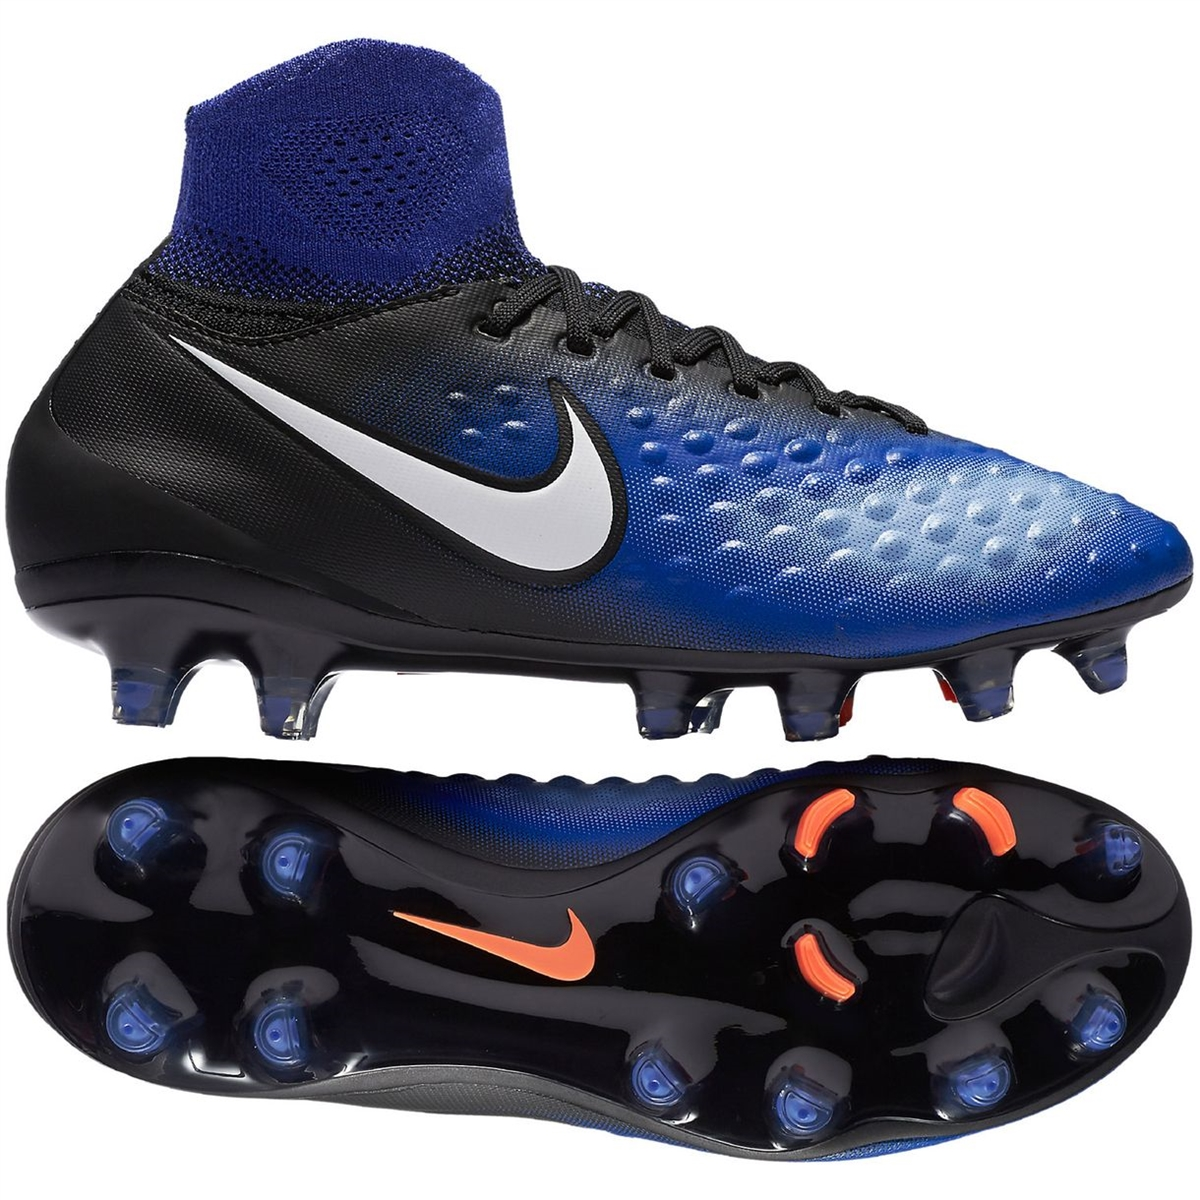 ca8b7d57b413 Nike Magista Obra II FG Youth Soccer Cleats (Black/White/Paramount ...